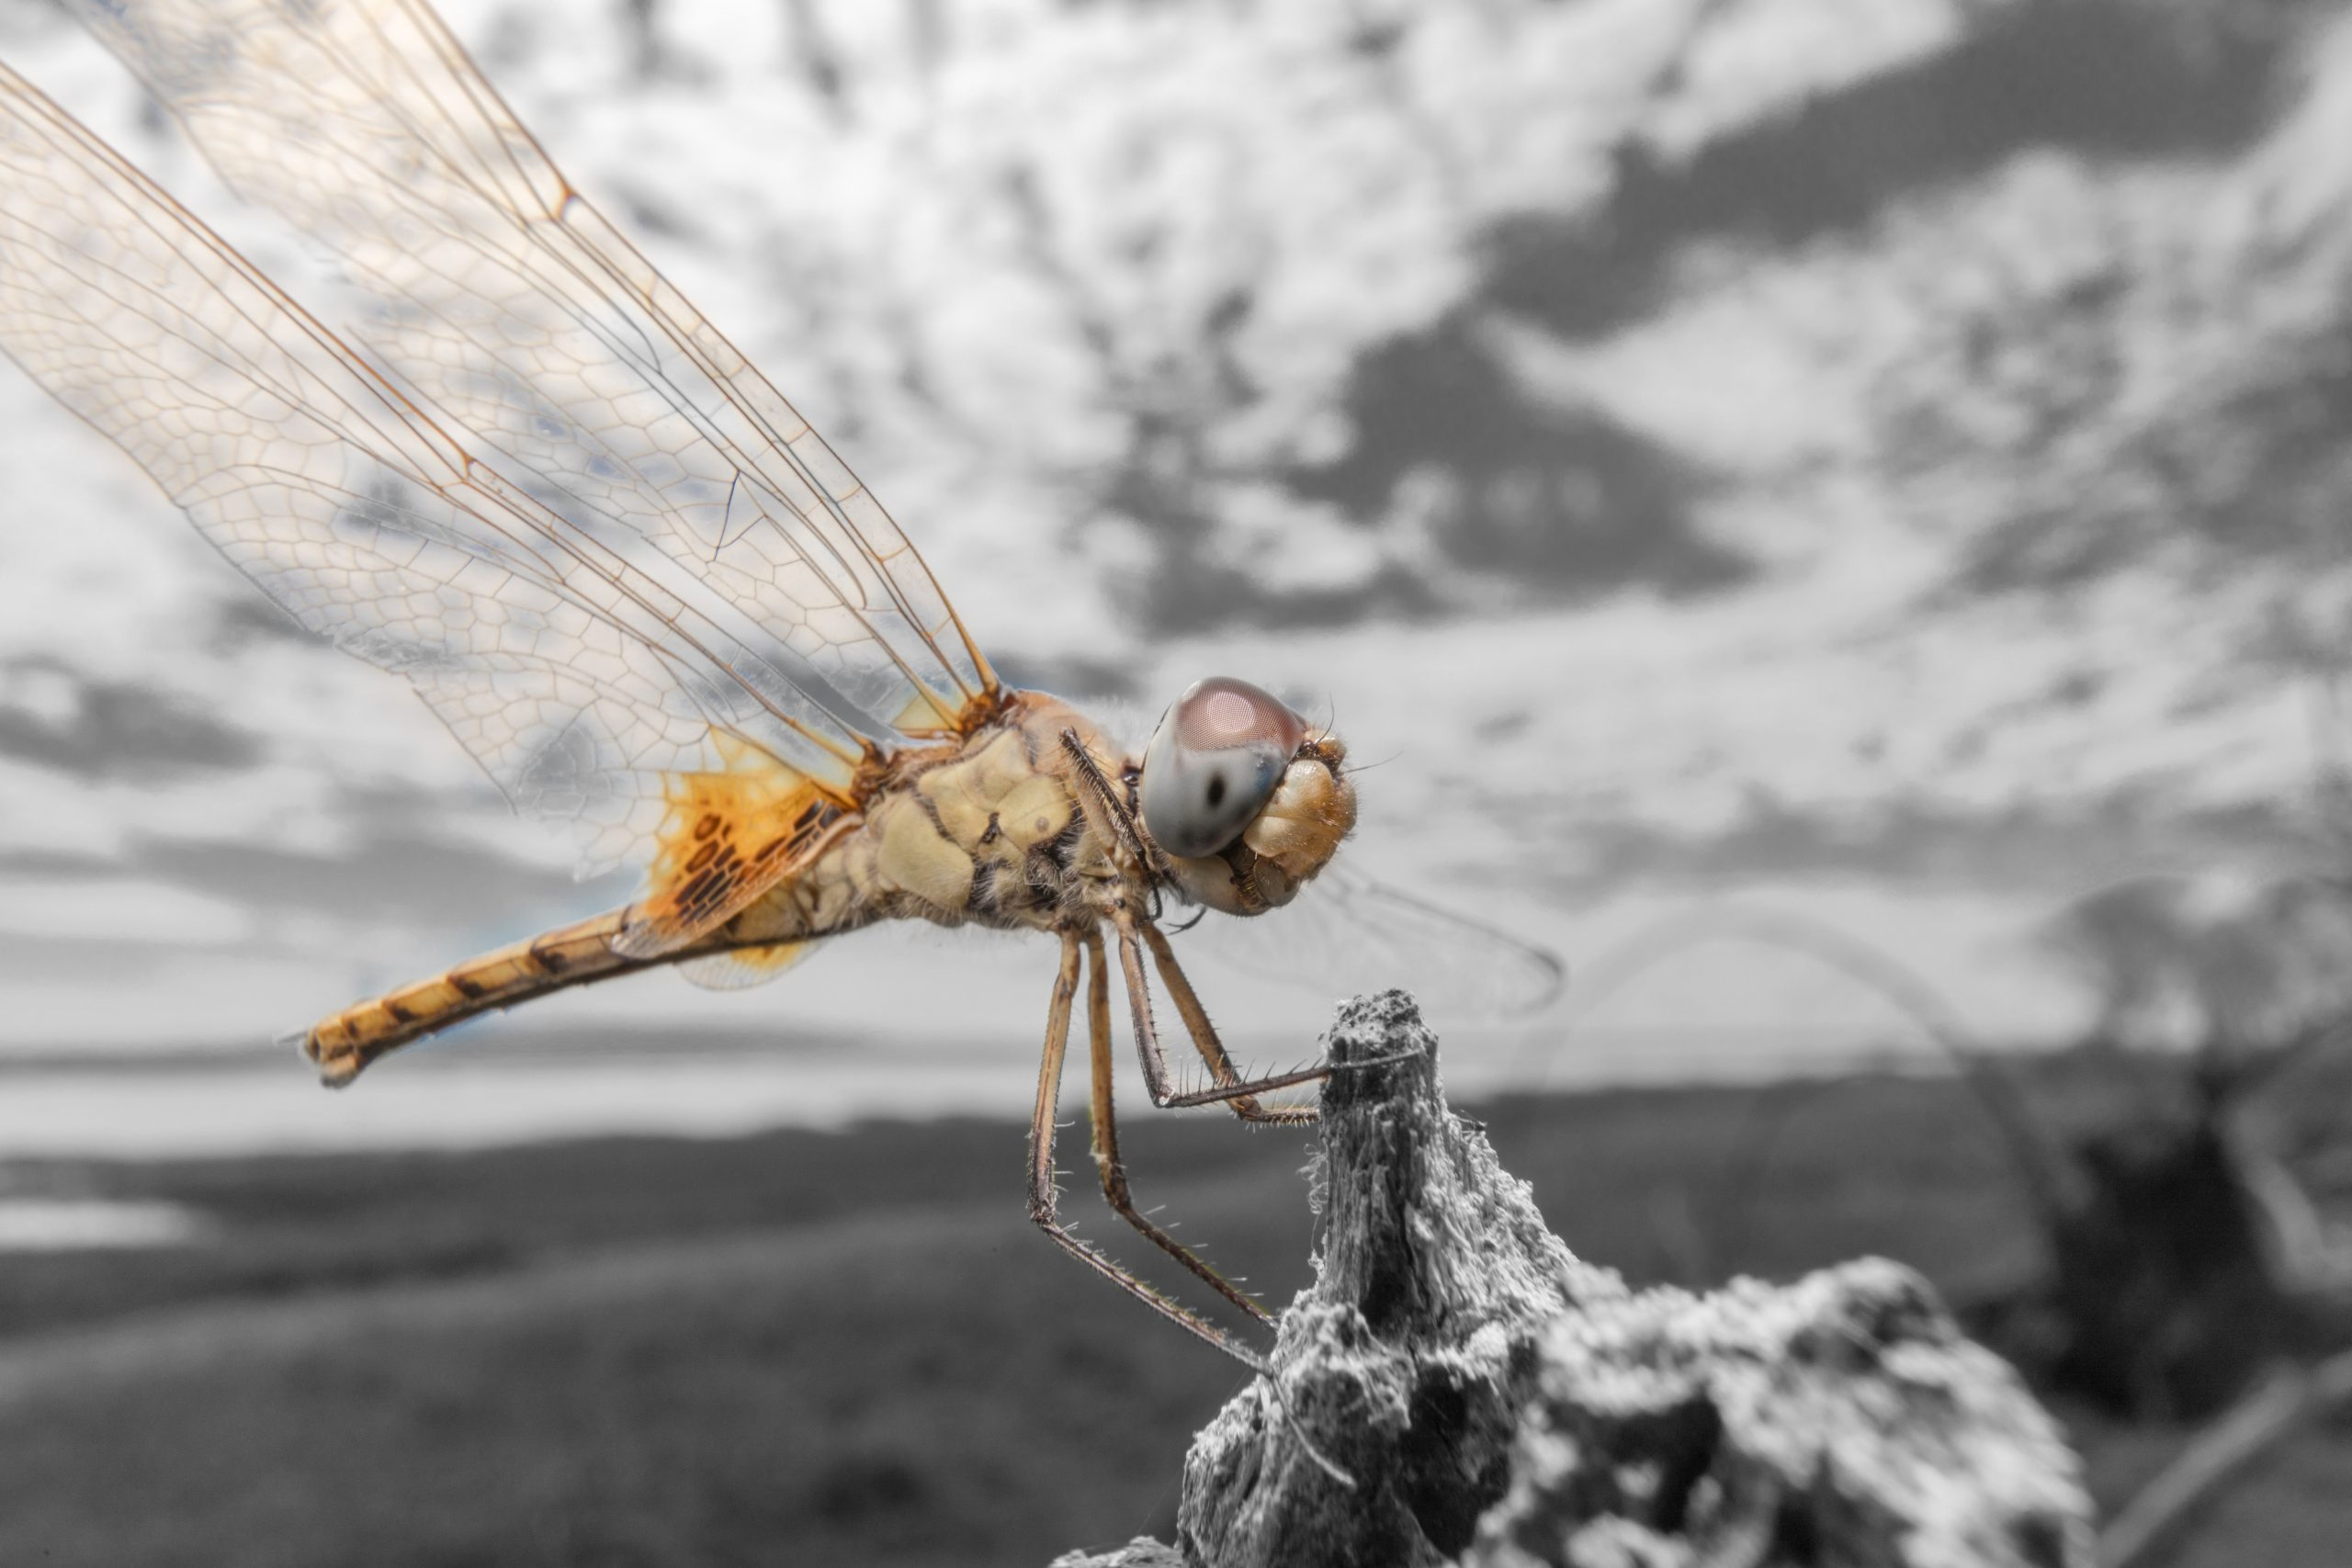 A picture of a dragonfly taken by Dr. Abbott